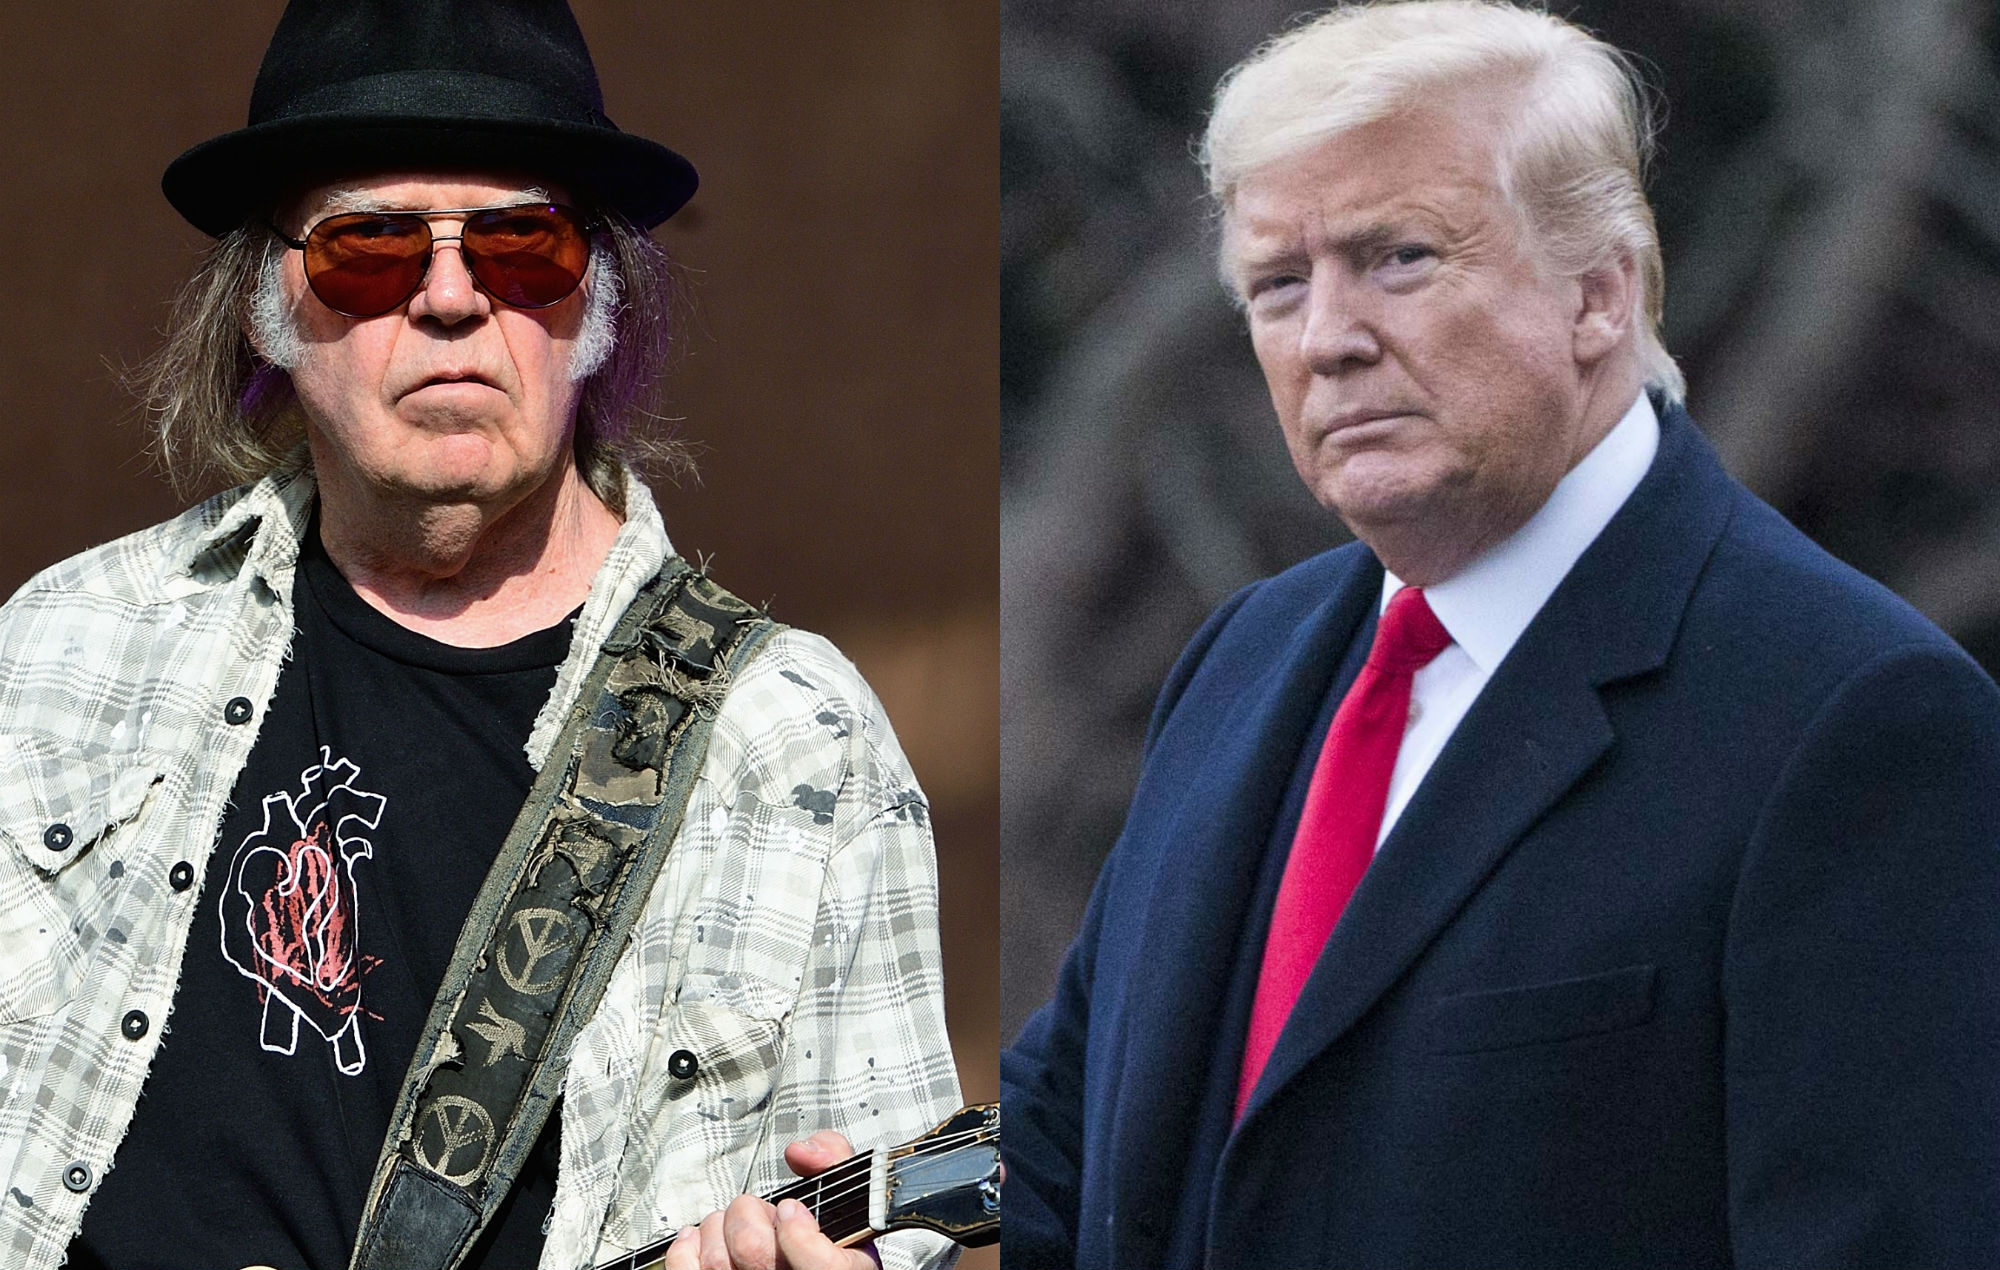 Neil Young writes scathing open letter to Donald Trump